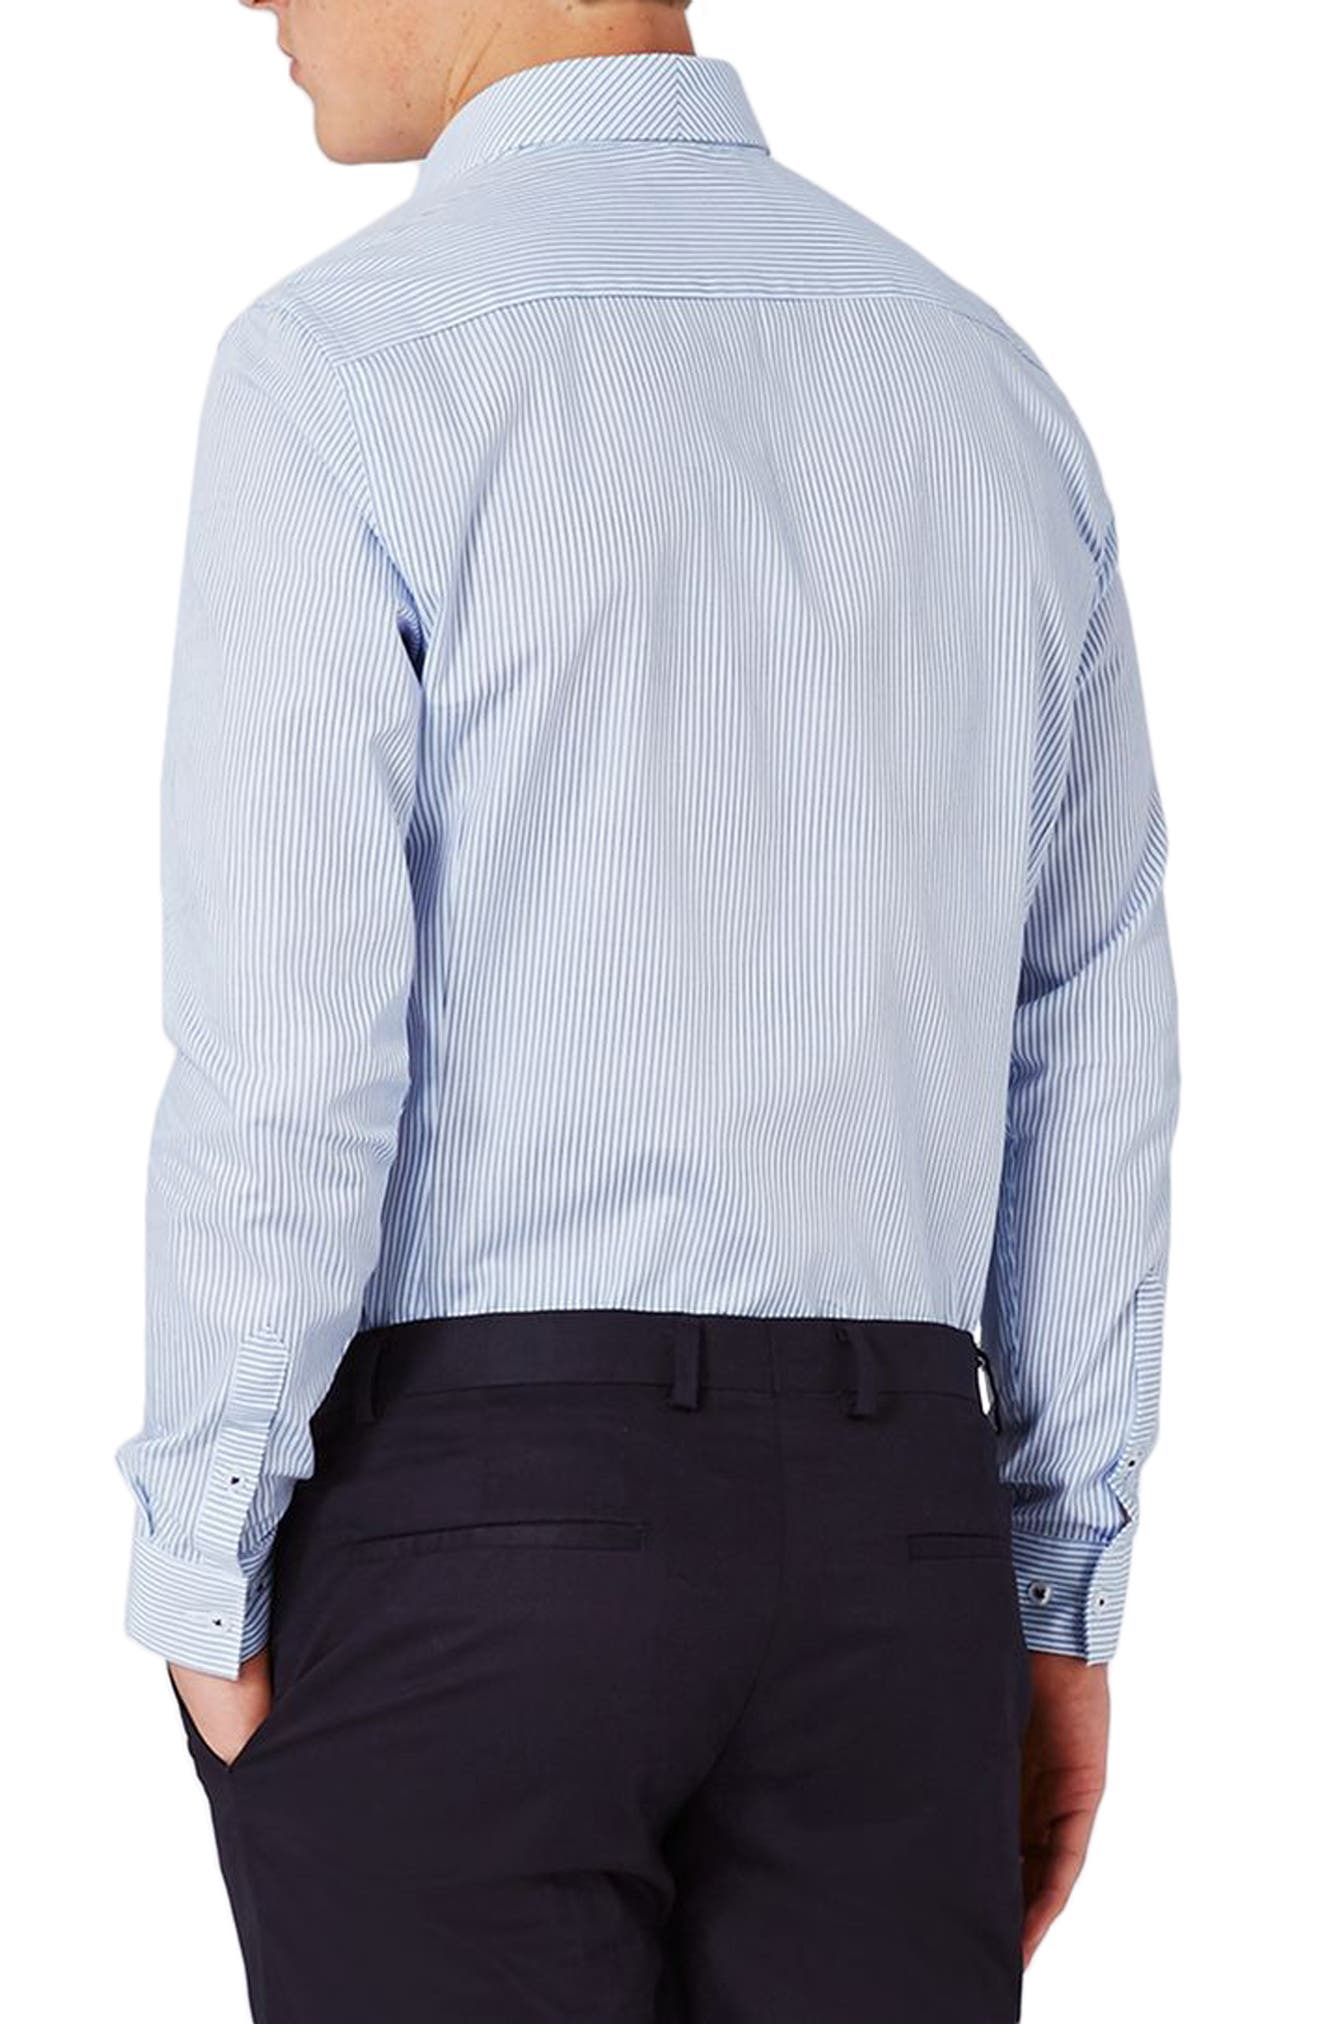 Alternate Image 3  - Topman Slim Fit Bias Stripe Dress Shirt